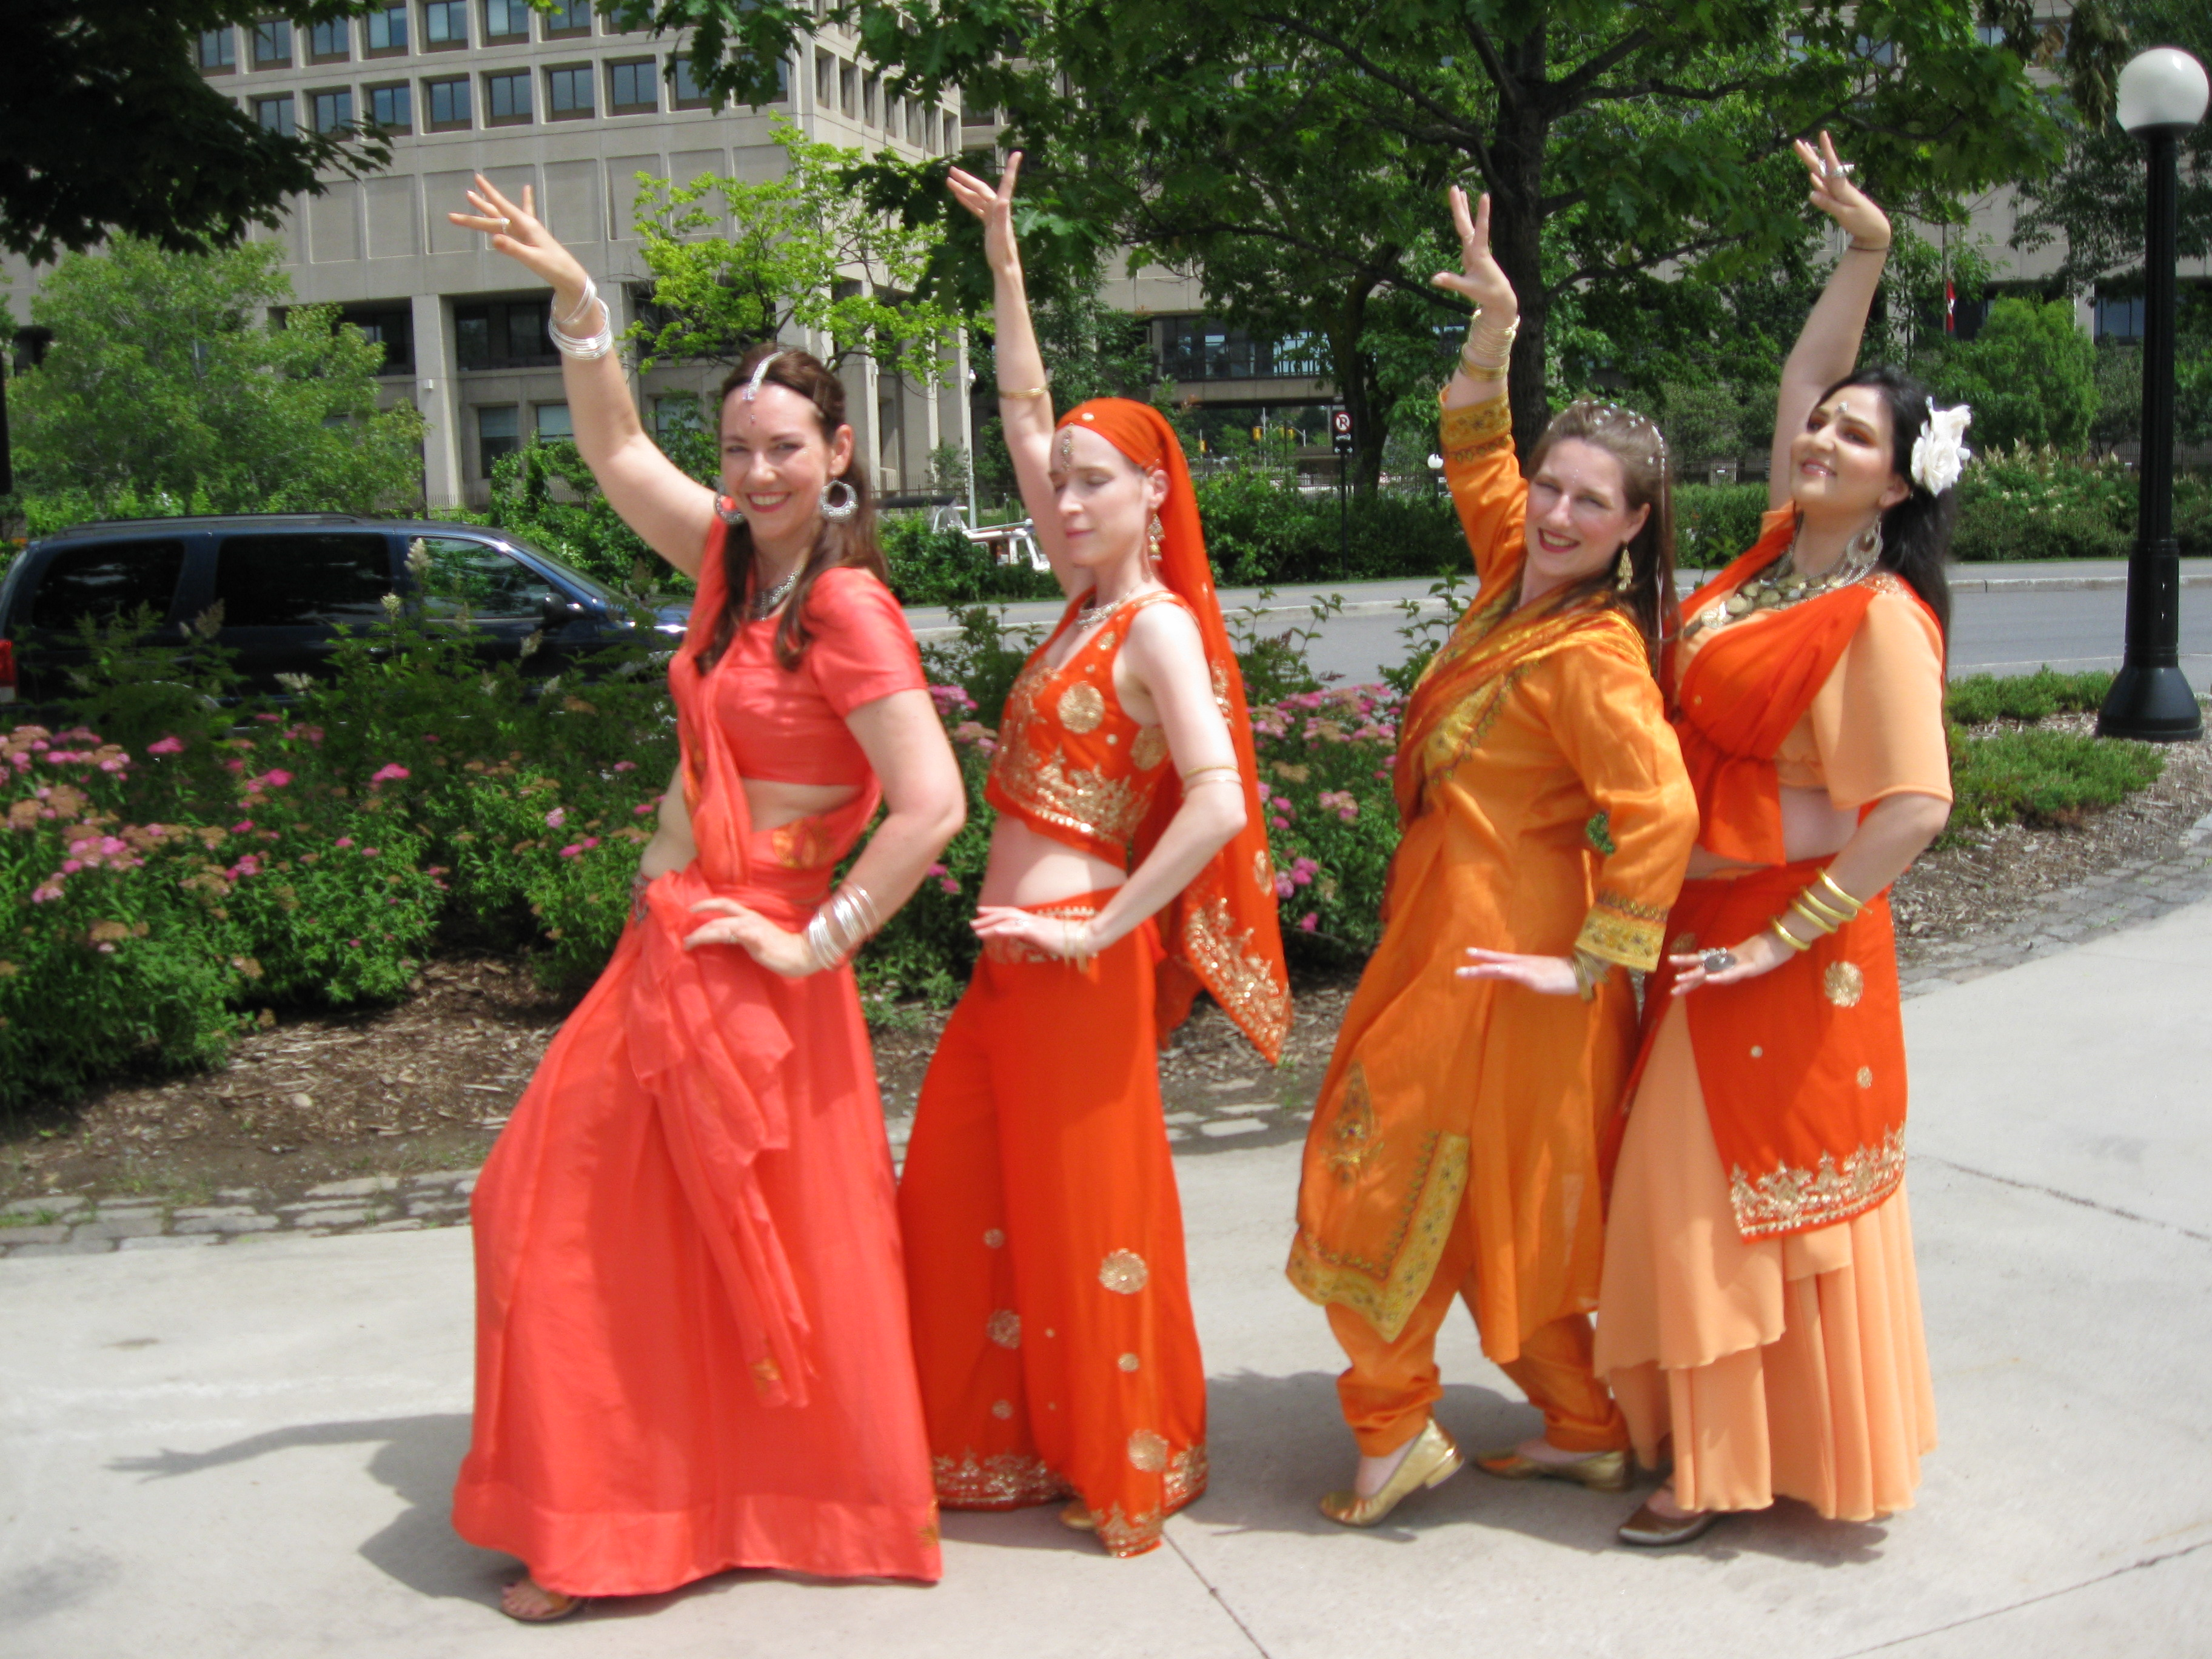 Bollywood For Fun at the South Asian Festival